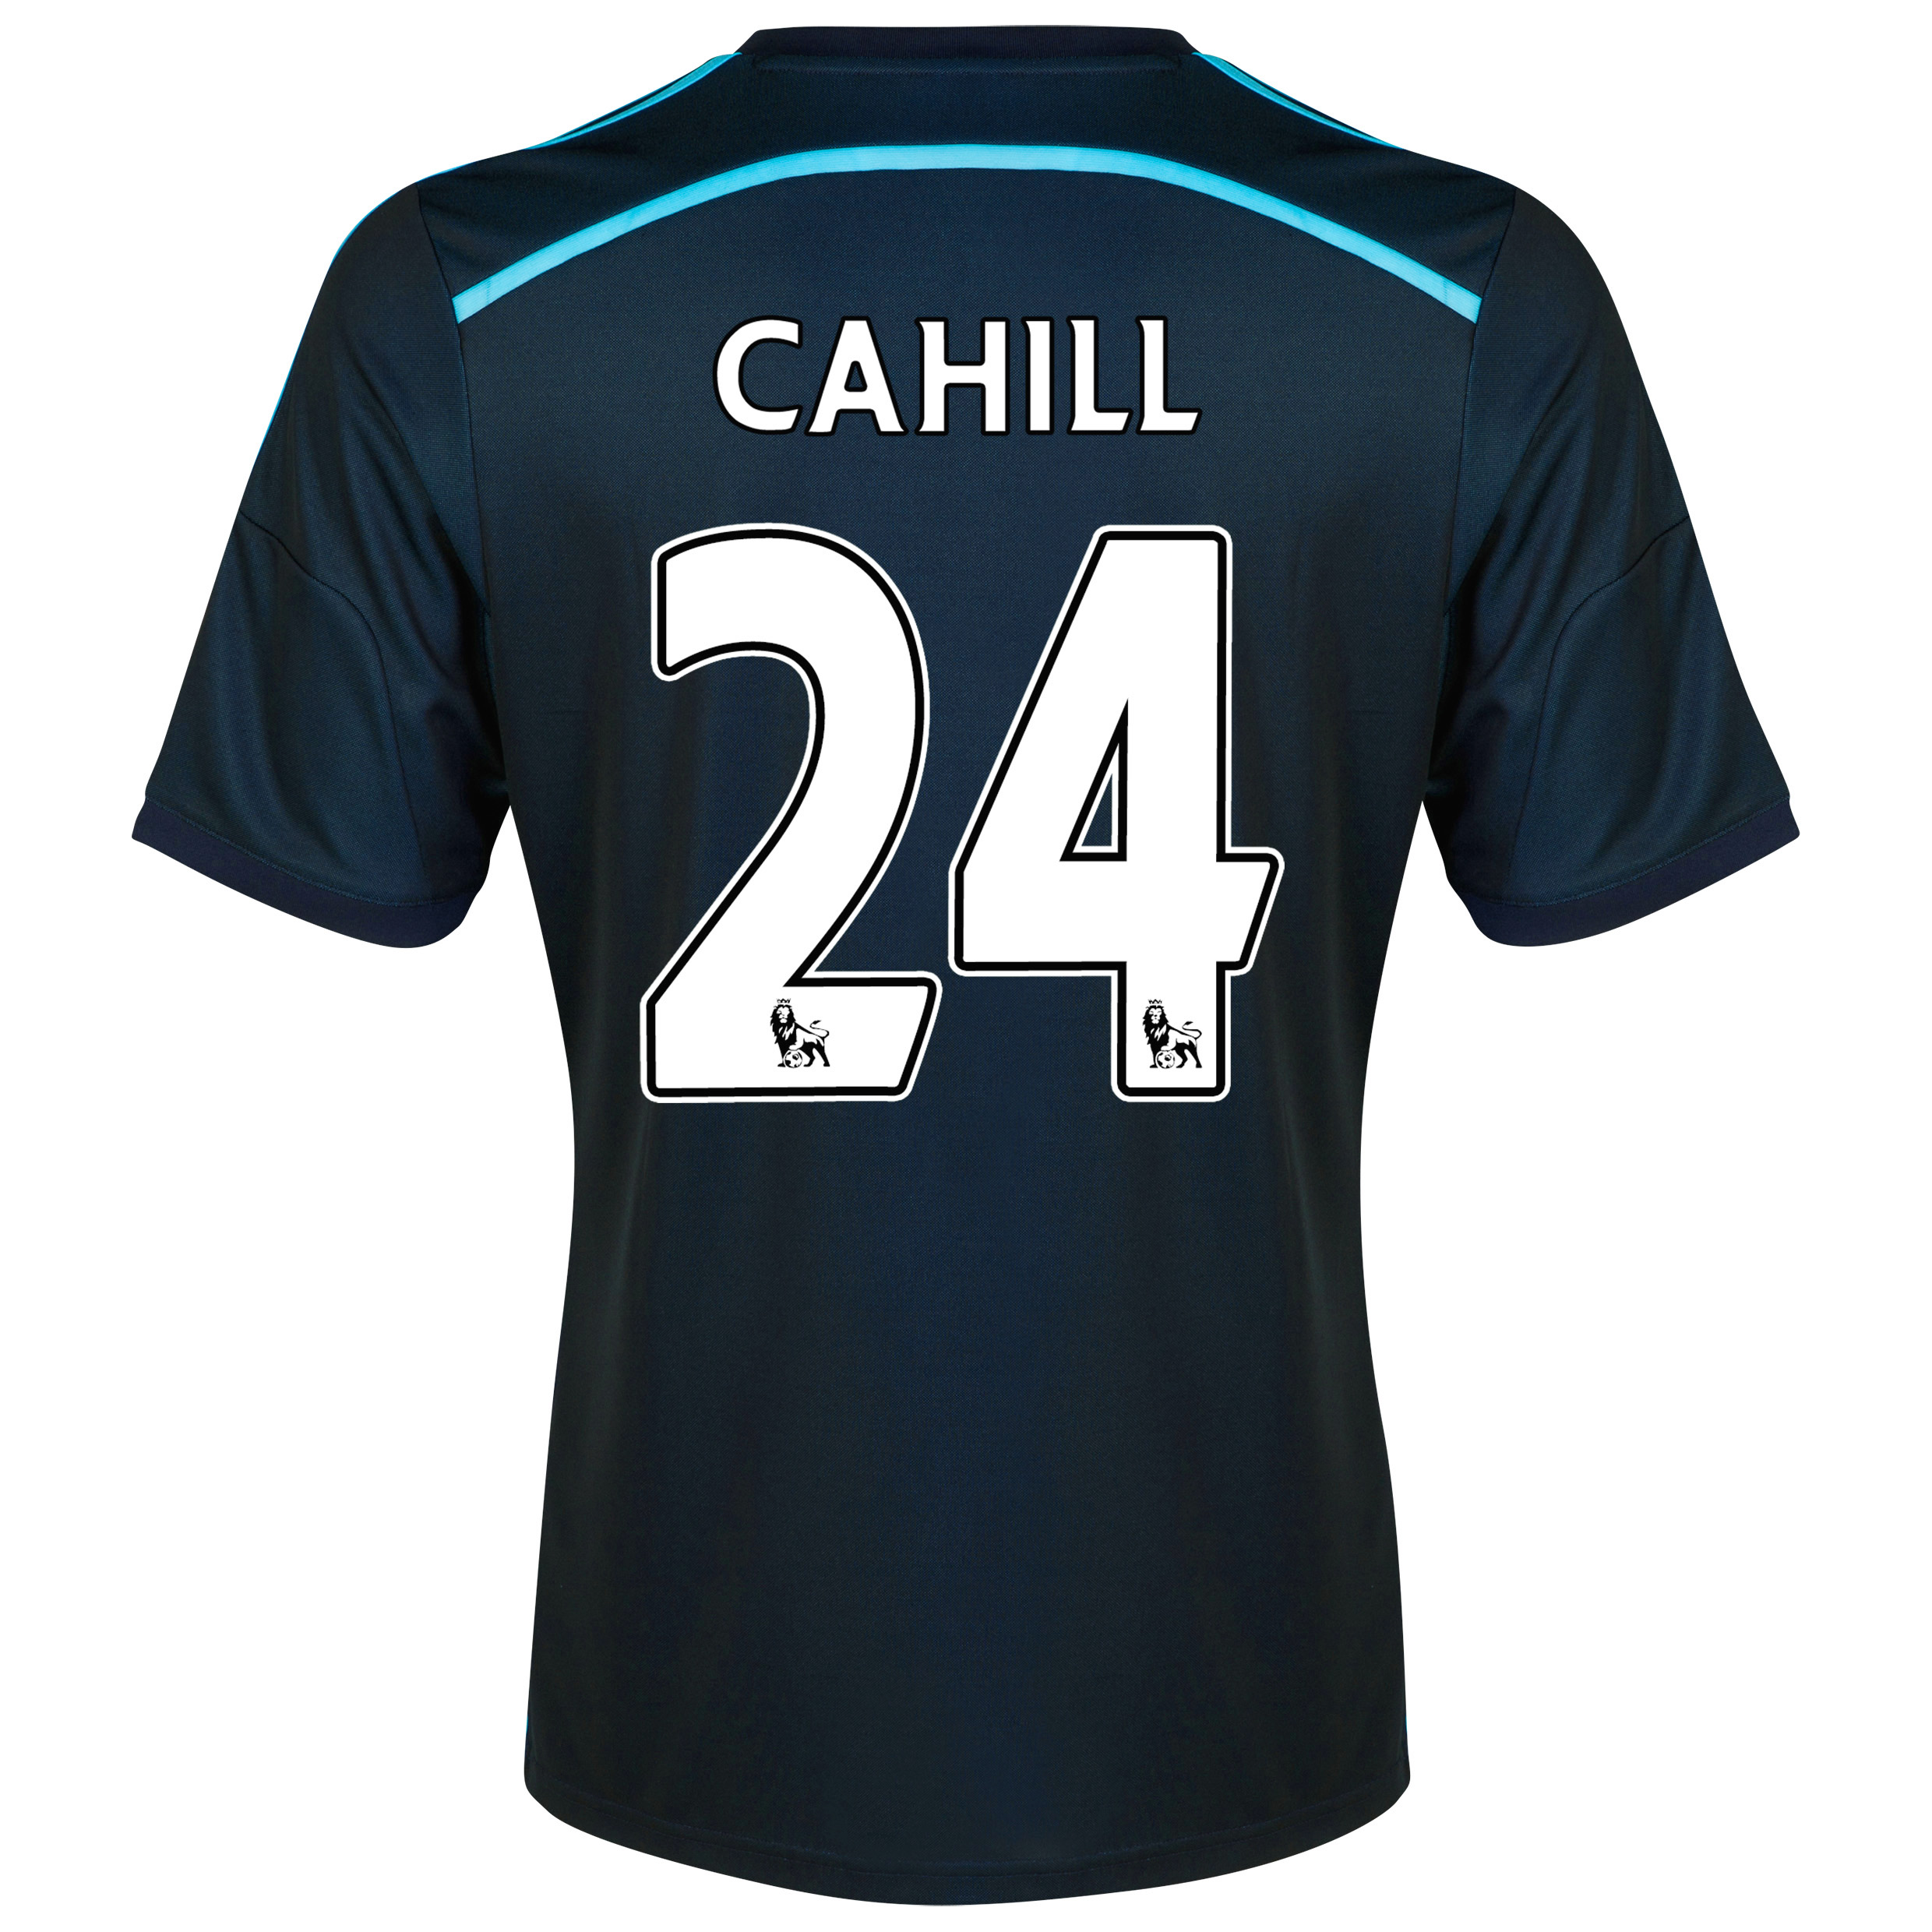 Chelsea Third Shirt 2014/15 - Kids with Cahill 24 printing